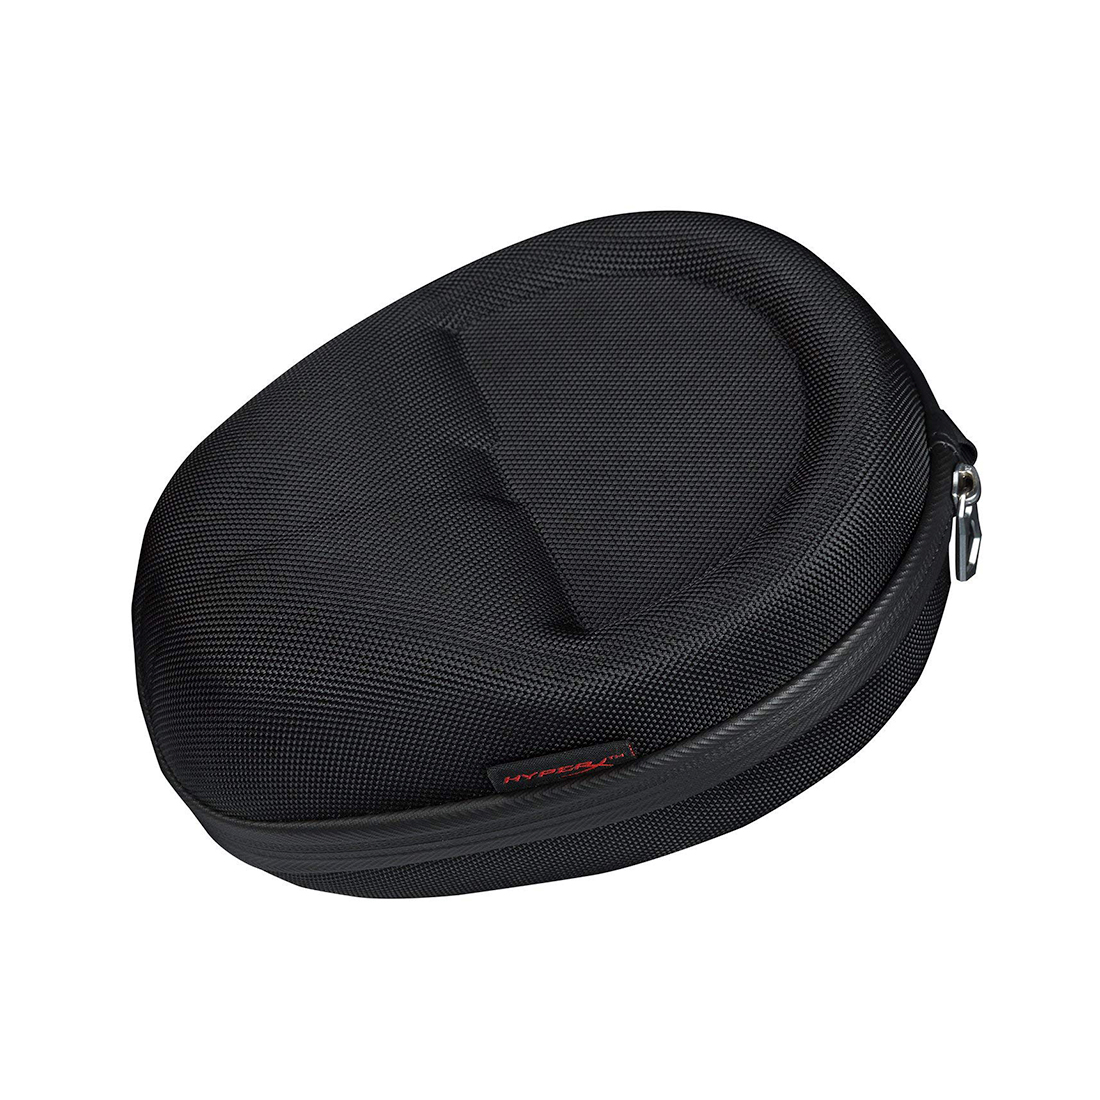 Чехол для наушников HyperX Cloud Carrying Case HXS-HSCC1 / EM